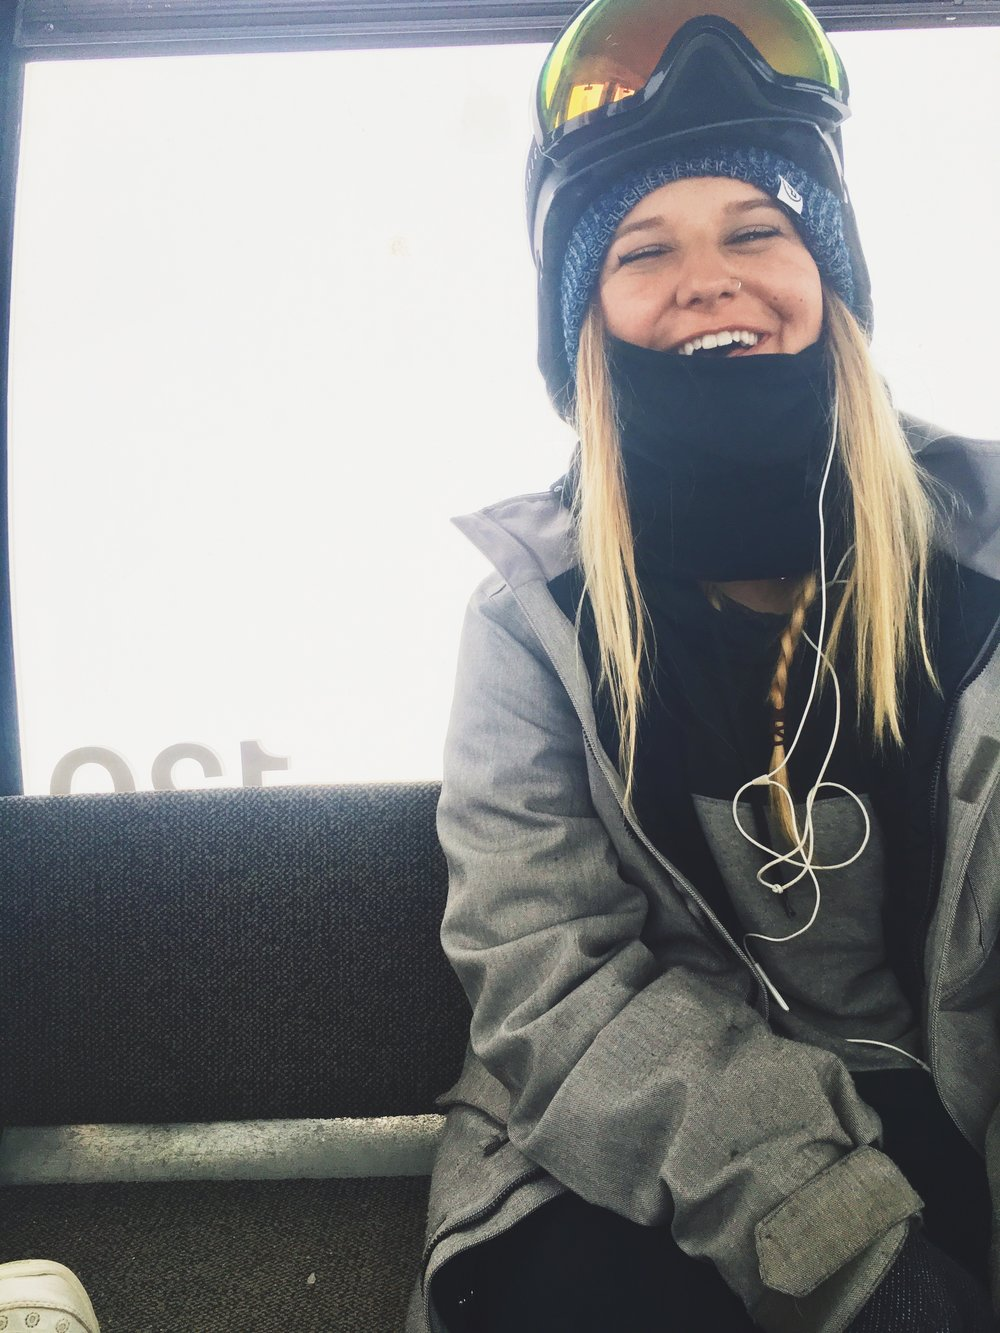 CALLIE KENNEY, STEAMBOAT CO